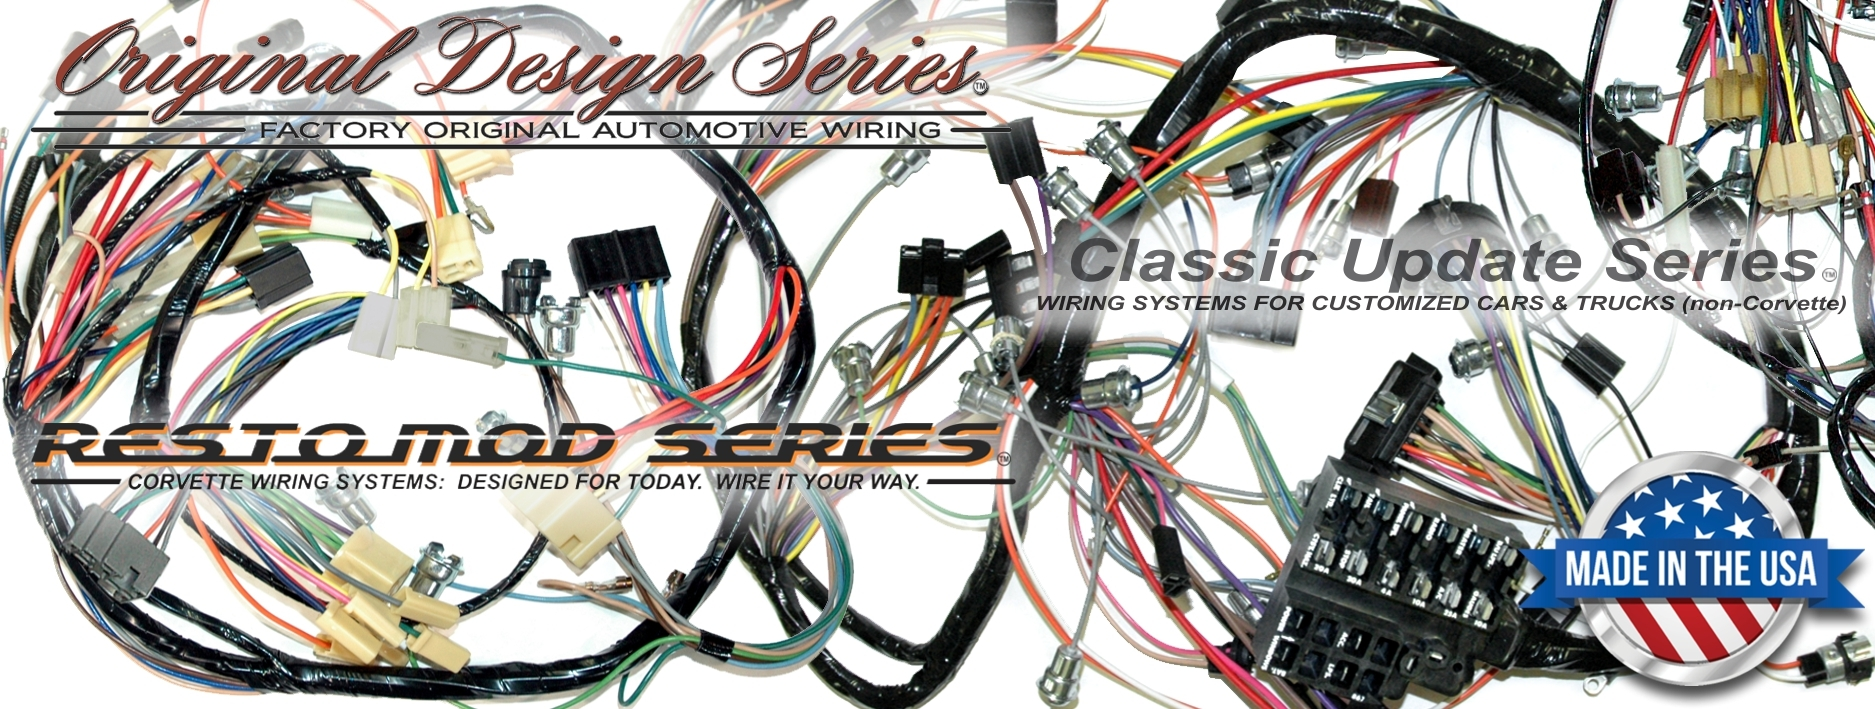 new header wiring_harnesses exact oem reproduction wiring harnesses and restomod wiring 1982 corvette ecm wire harness at gsmx.co